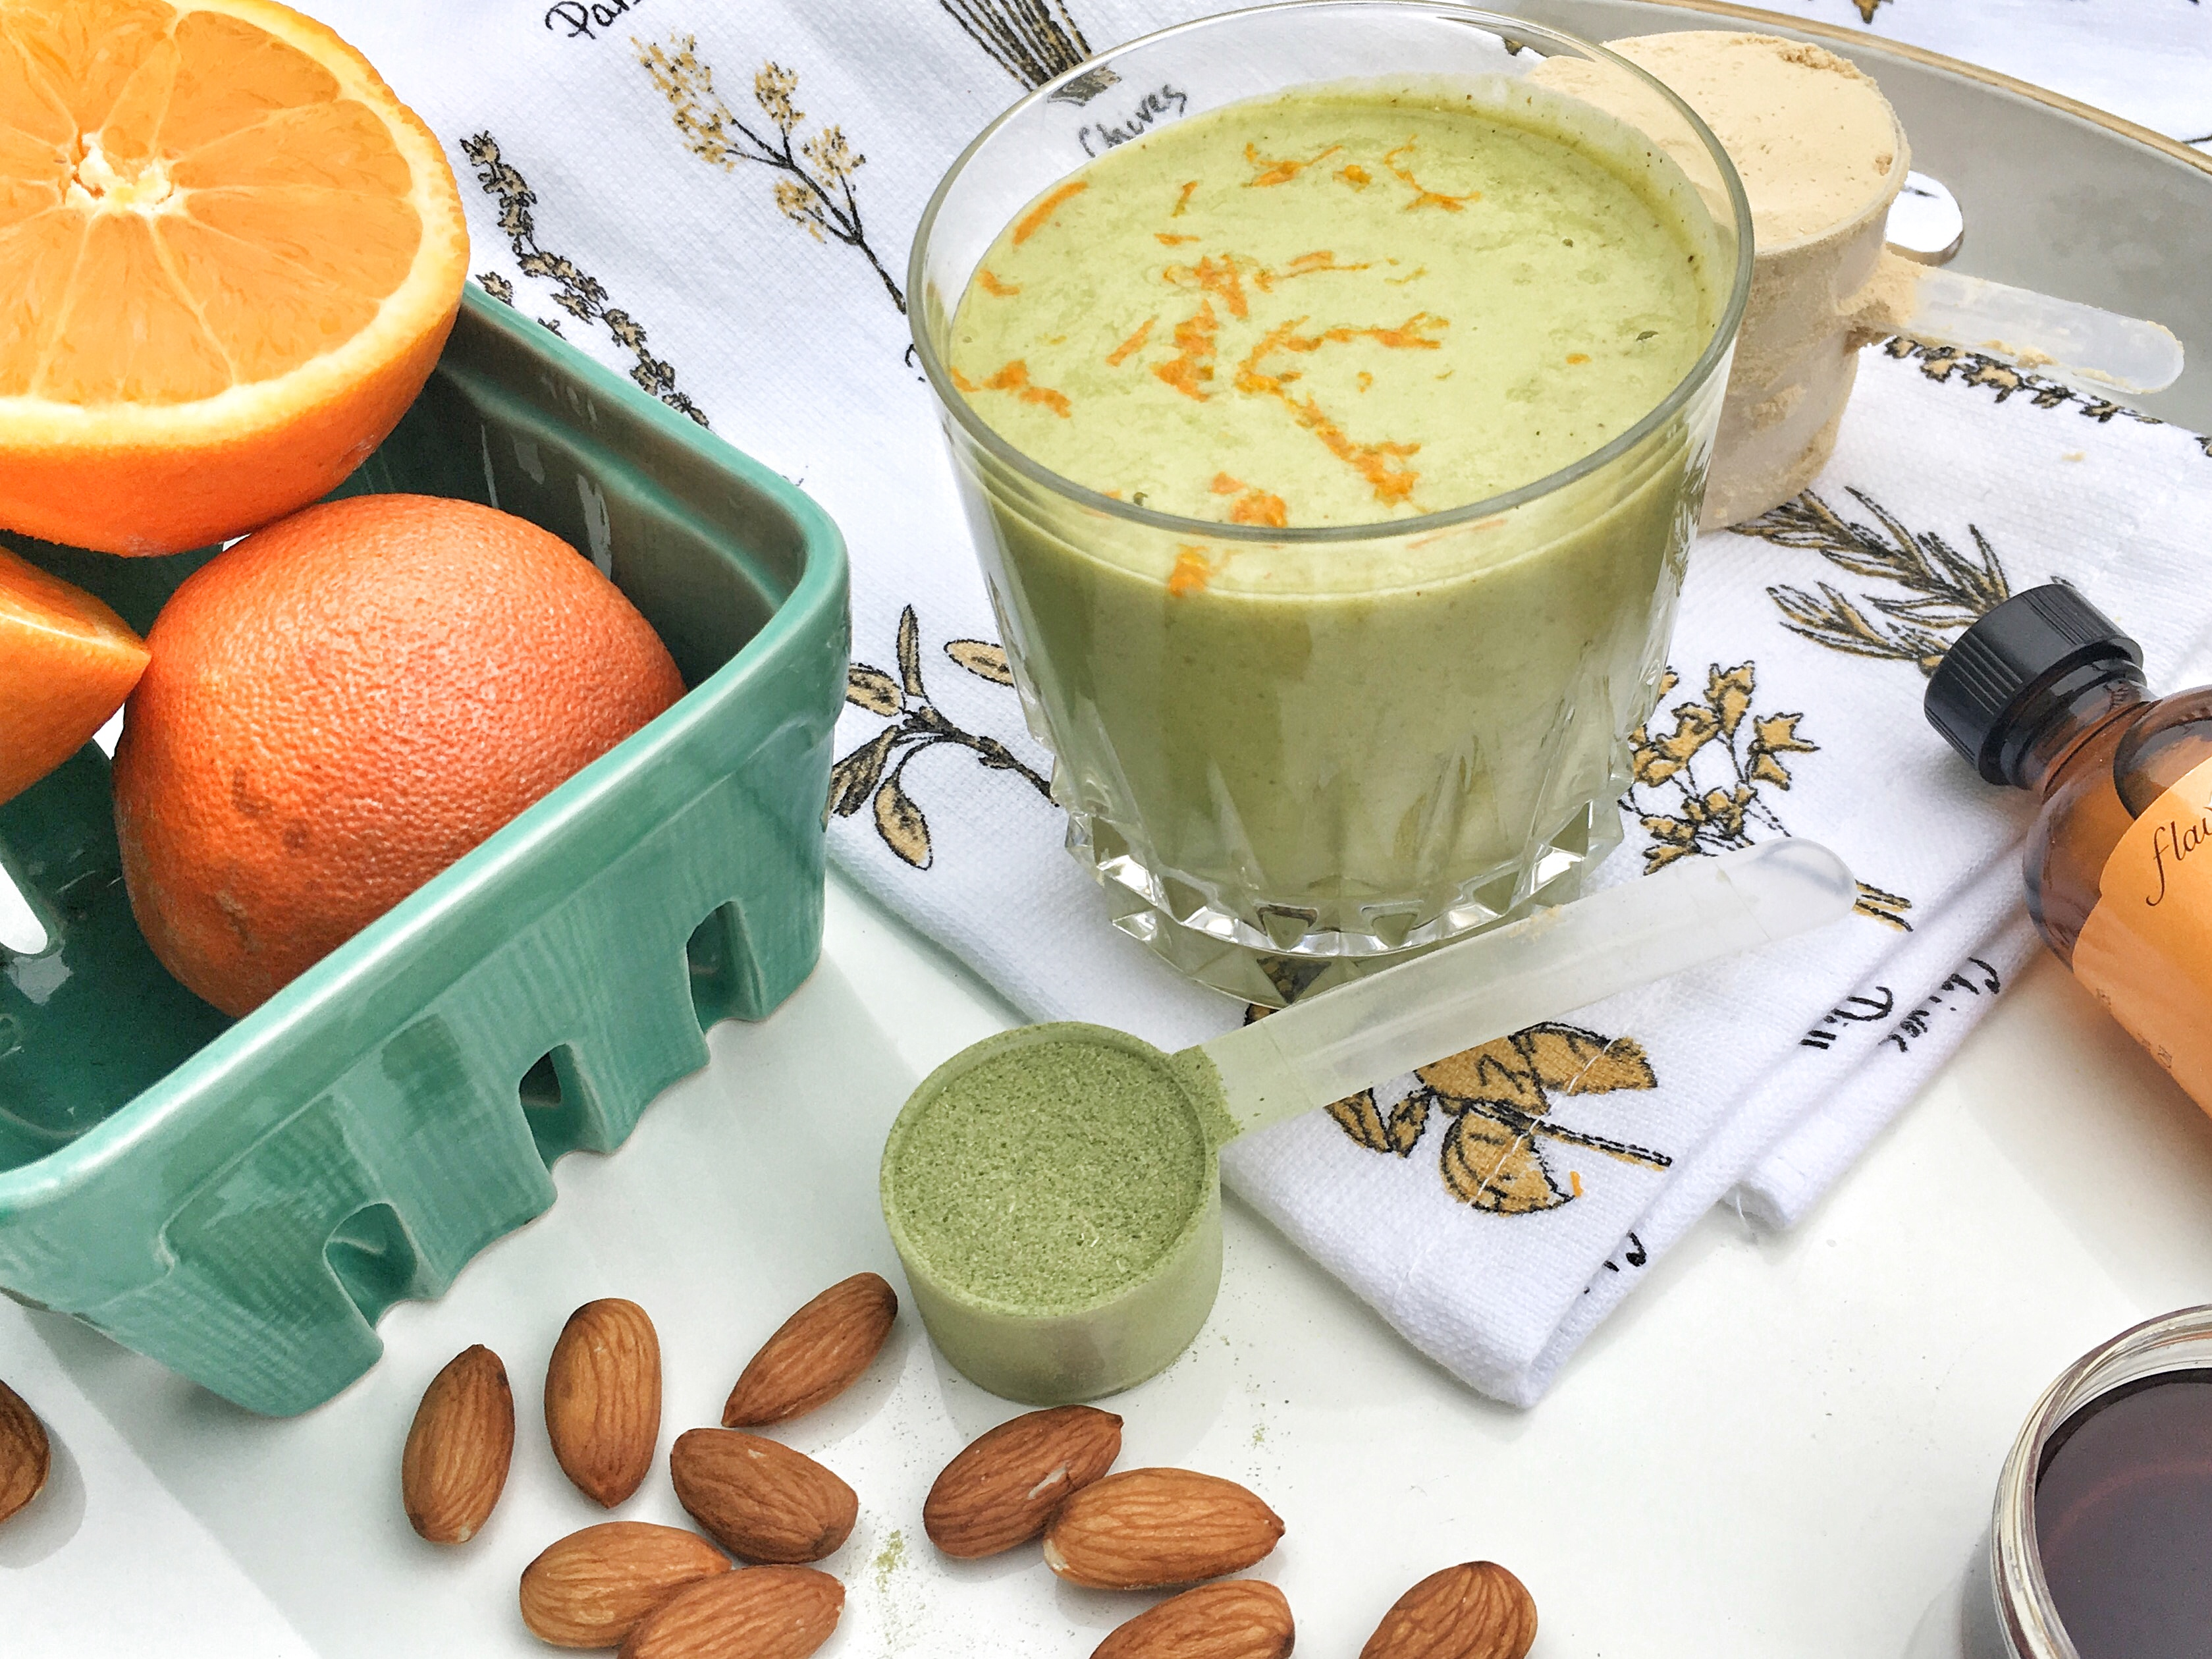 IMG 1146 1 - Cheers to this Immunity Boosting Vitamin E Boost (Eboost) Smoothie